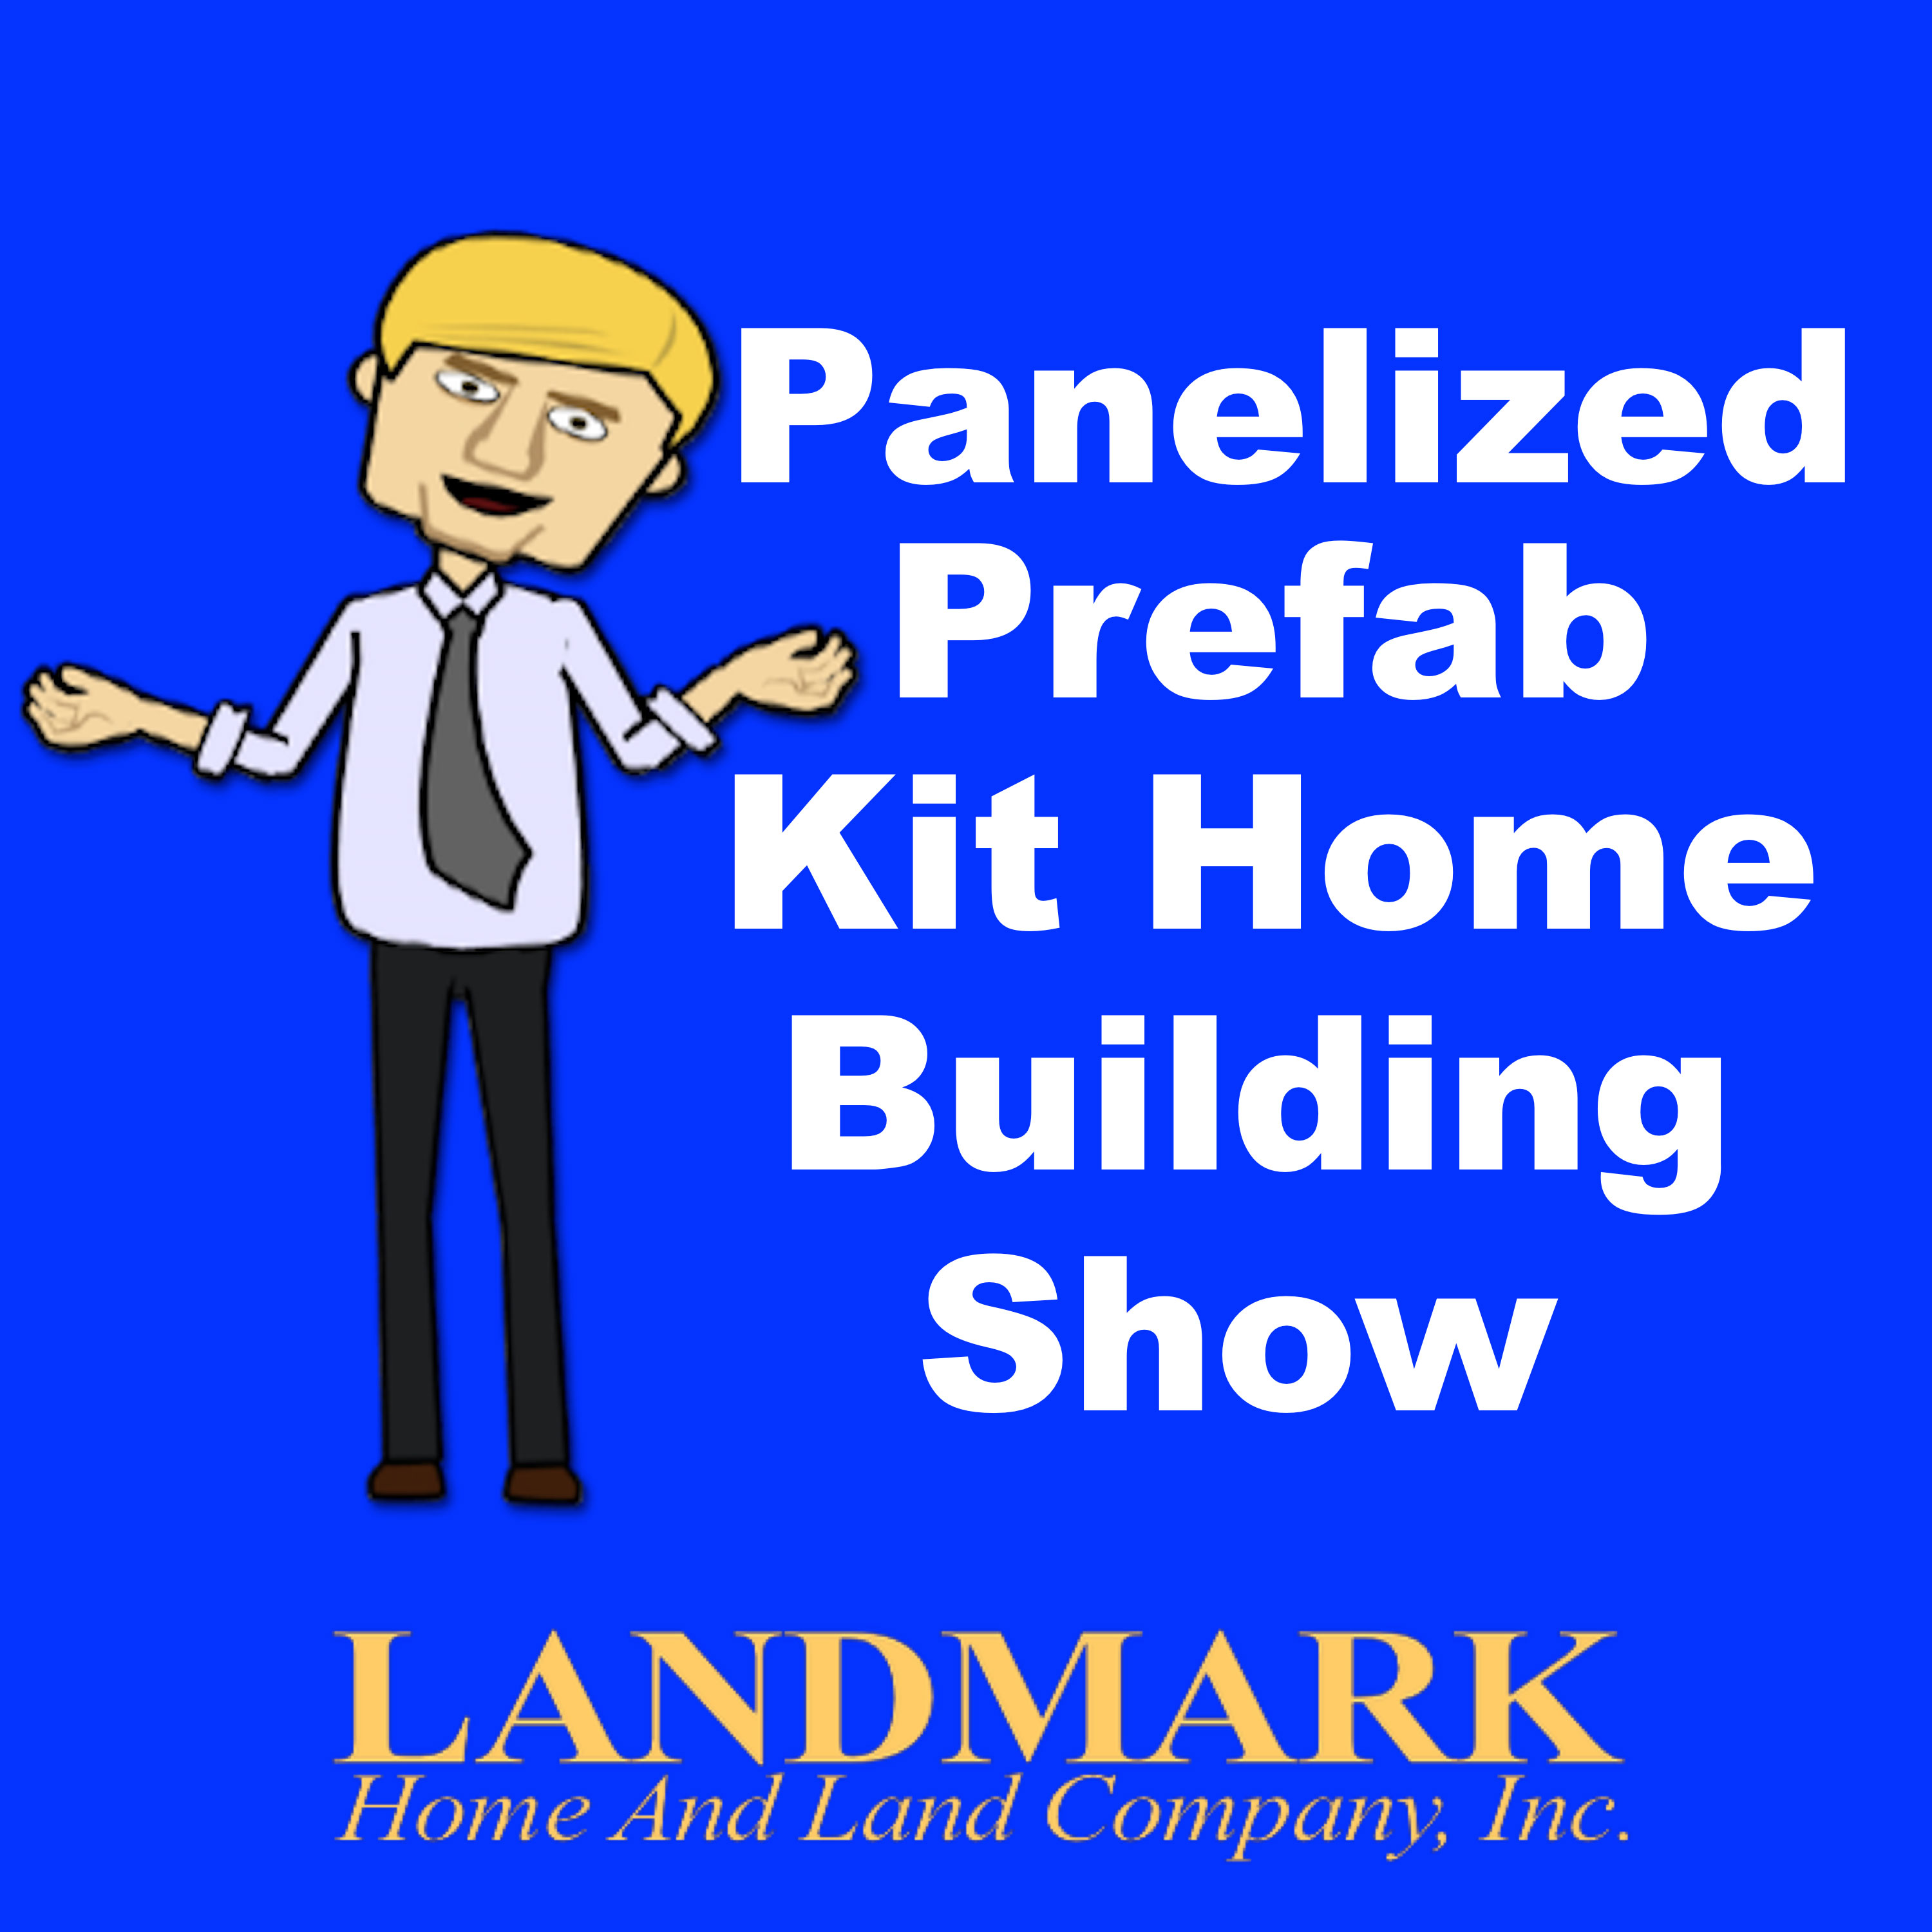 Panelized Prefab Kit Home Building Show